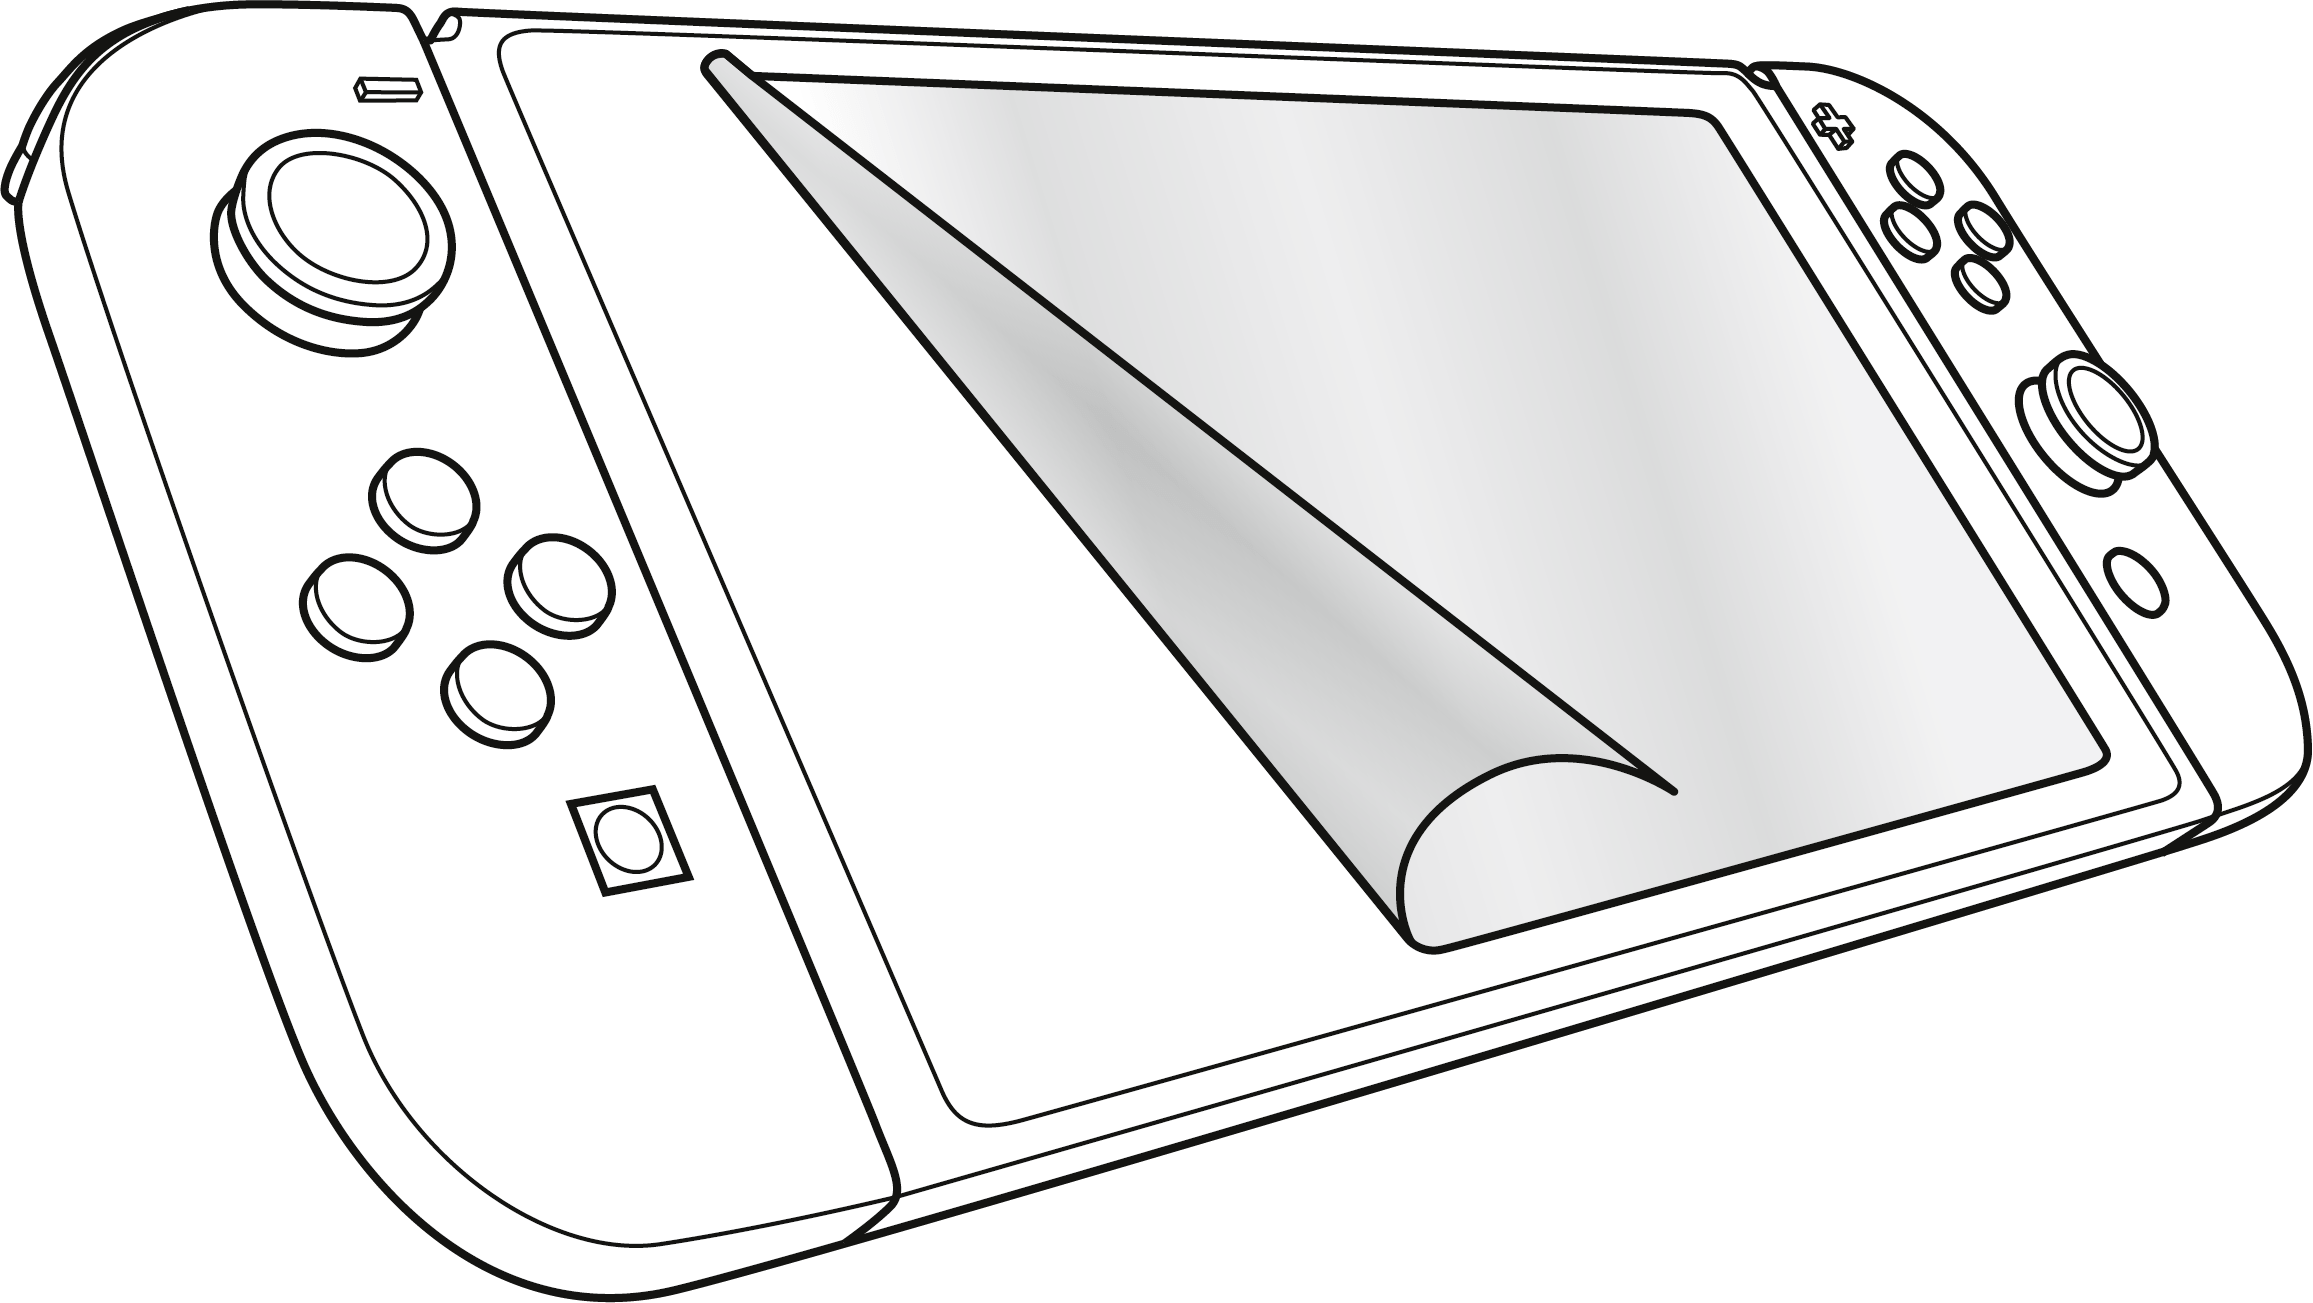 Video Game Nintendo Switch Coloring Page, Printable ...